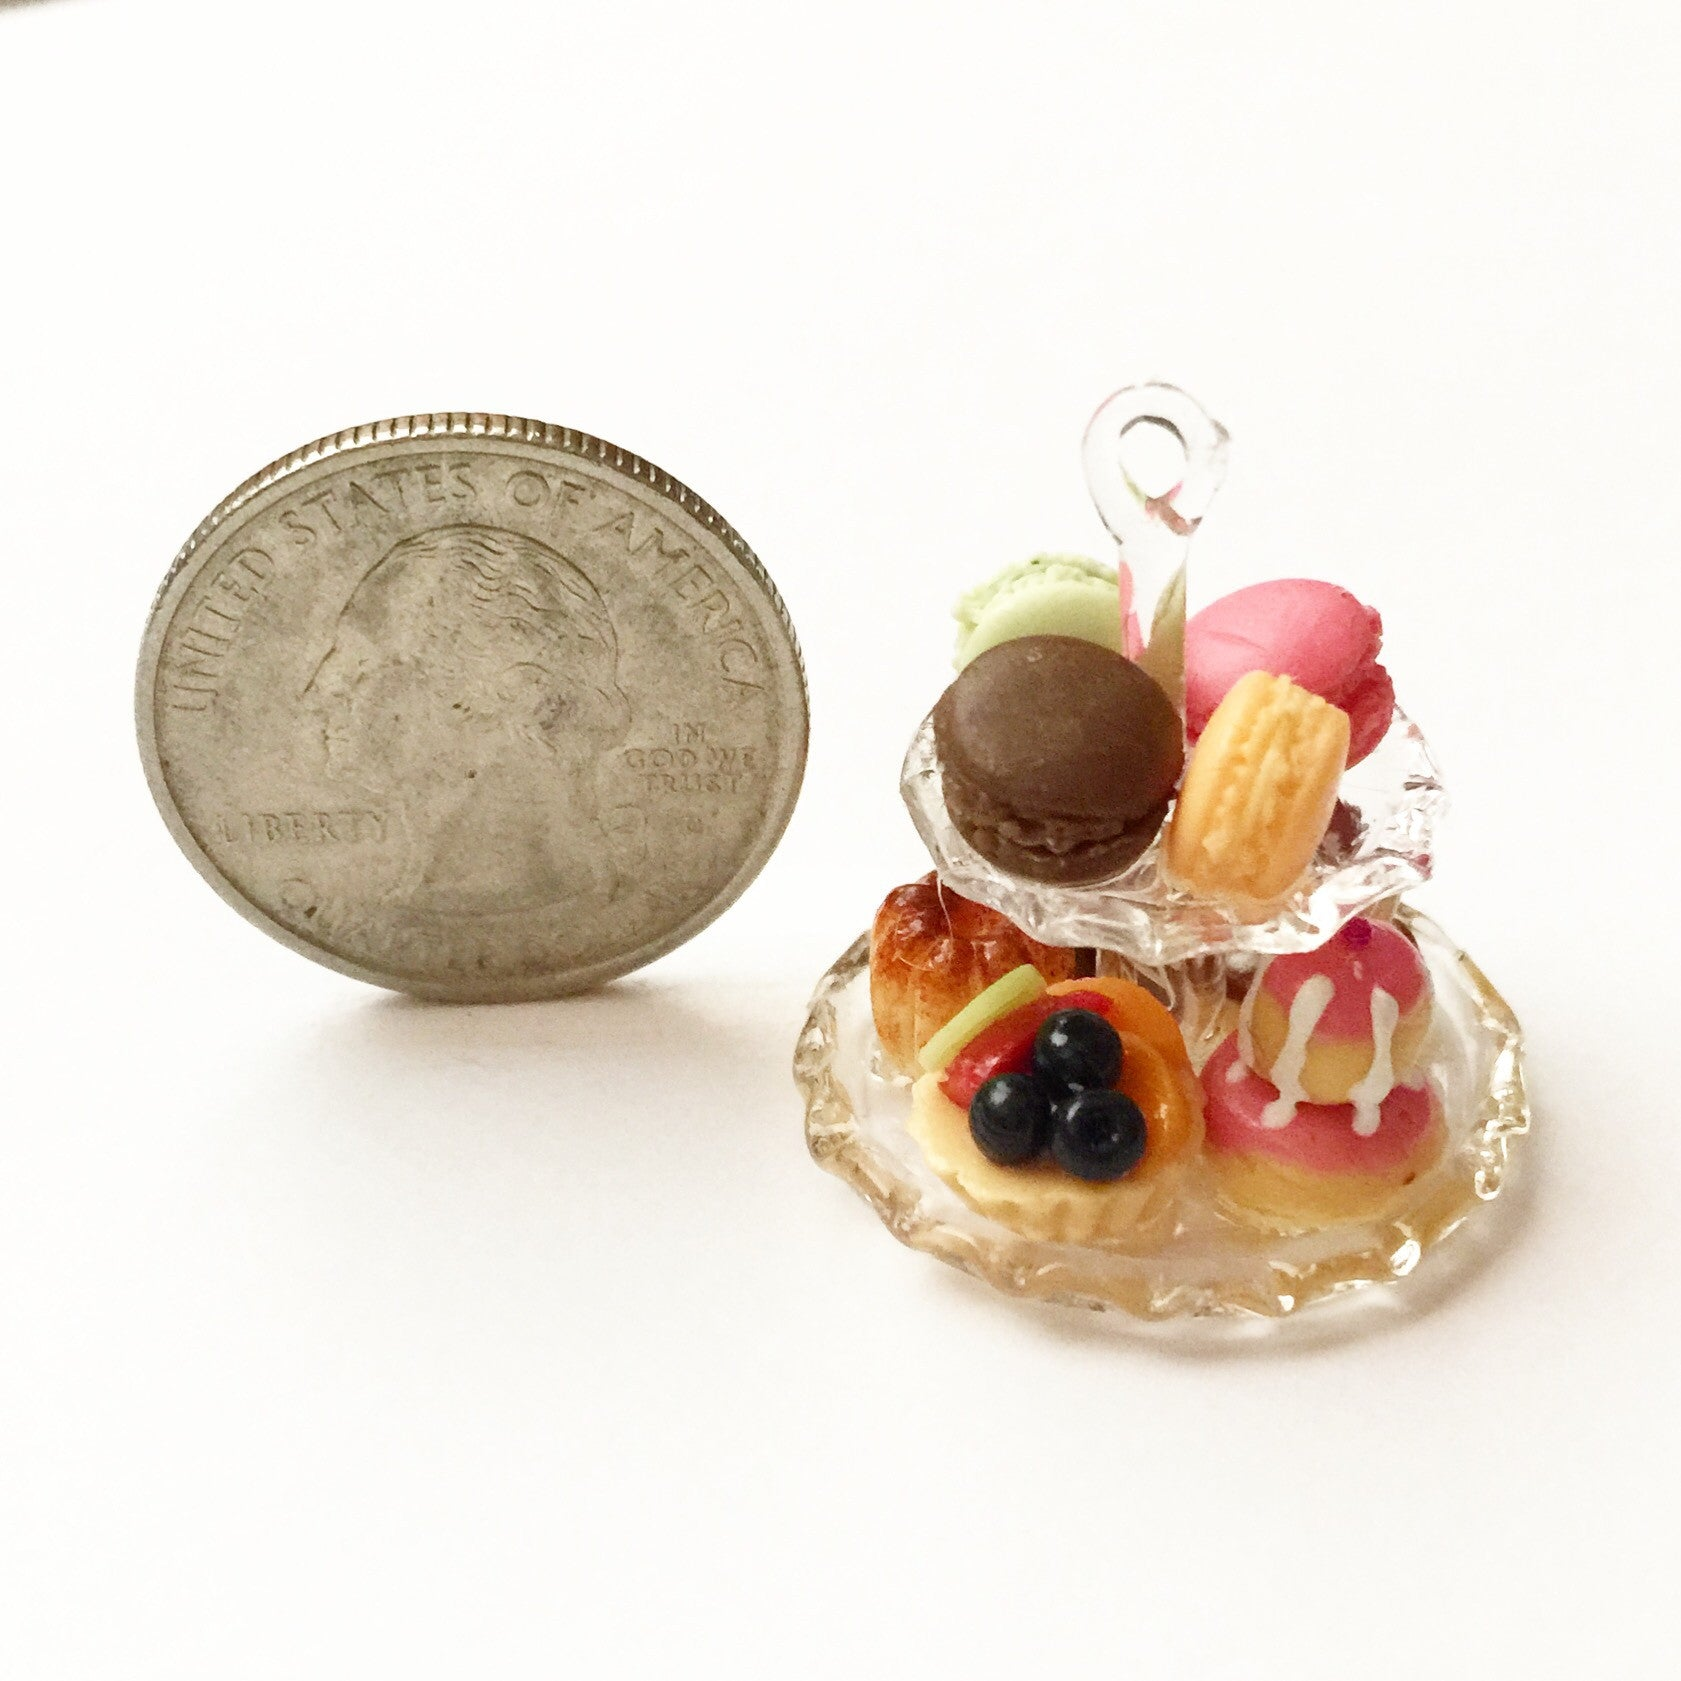 french pastries necklace - Jillicious charms and accessories - 5